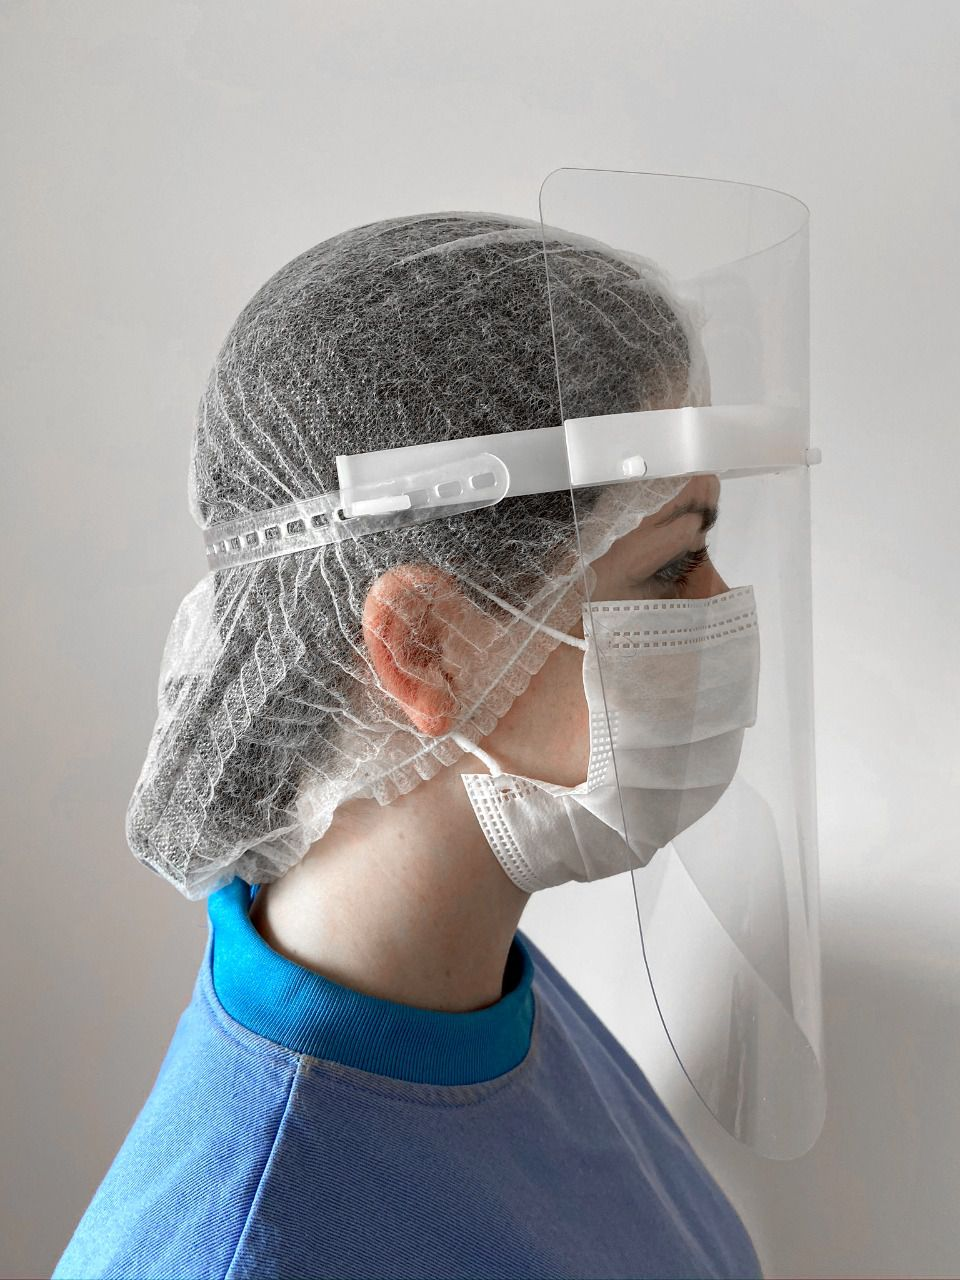 Face Shield MFI - kit c/120 unids. (R$9,90/unid.)